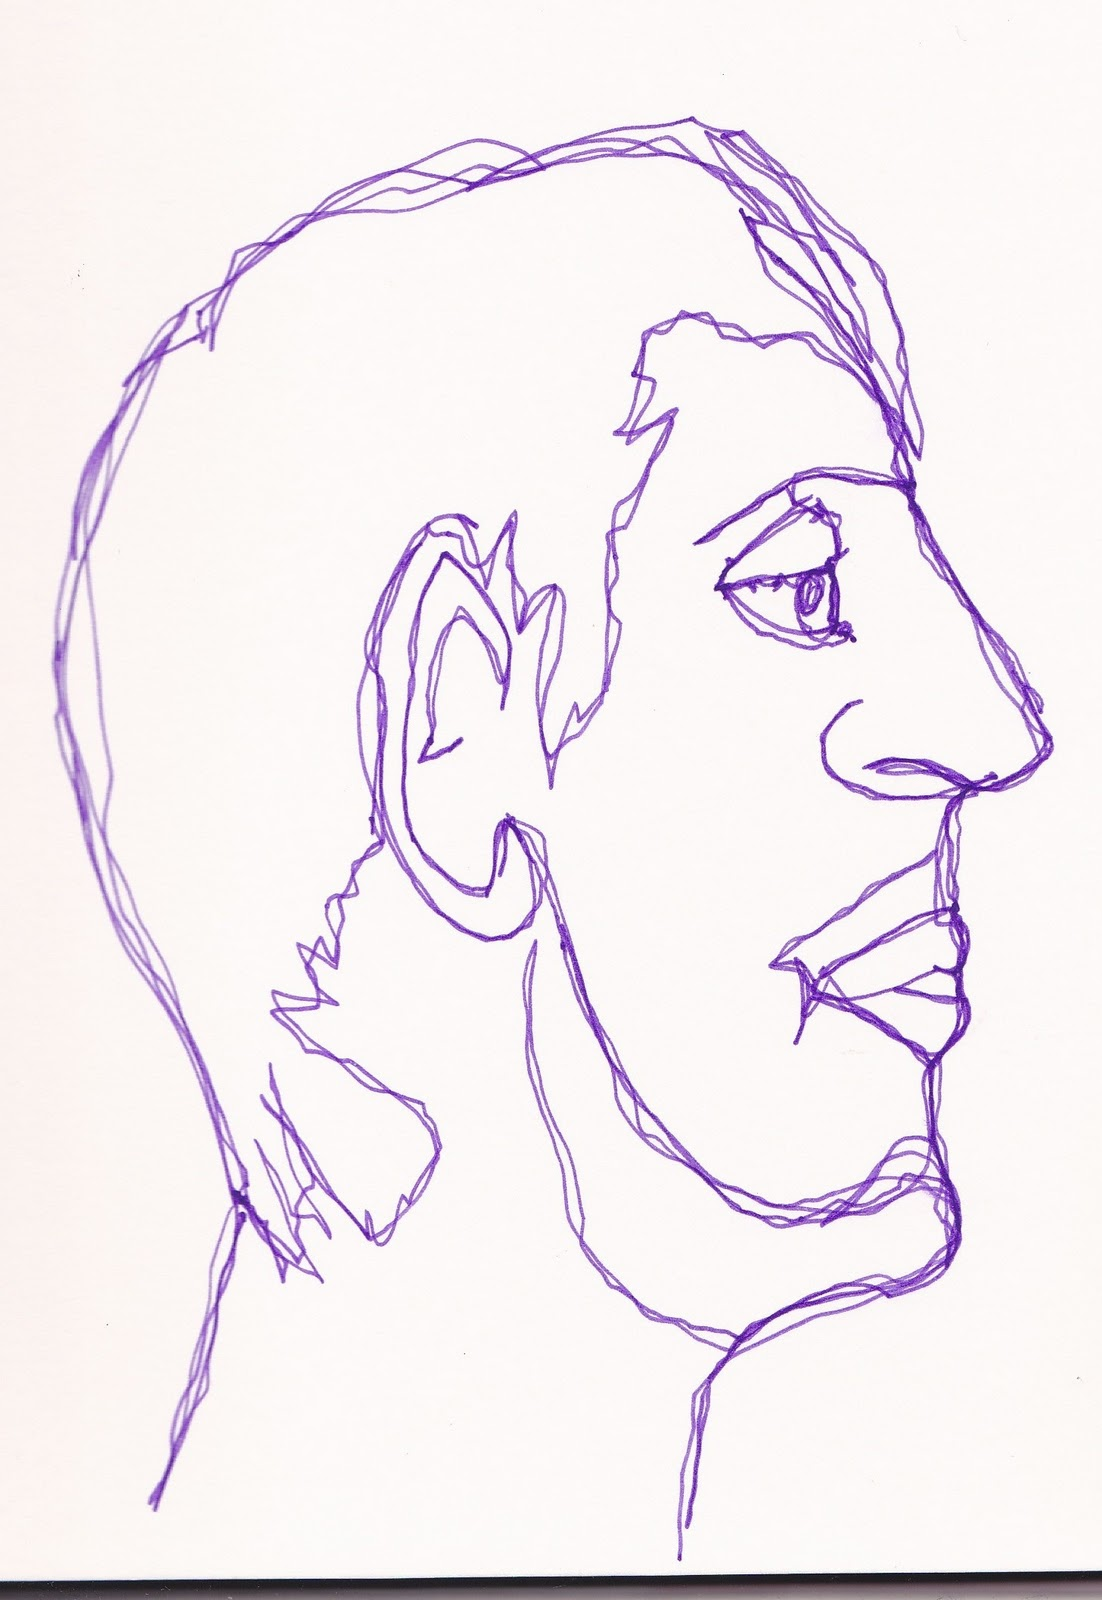 One Line Art Animation : Animation arts one line portraits